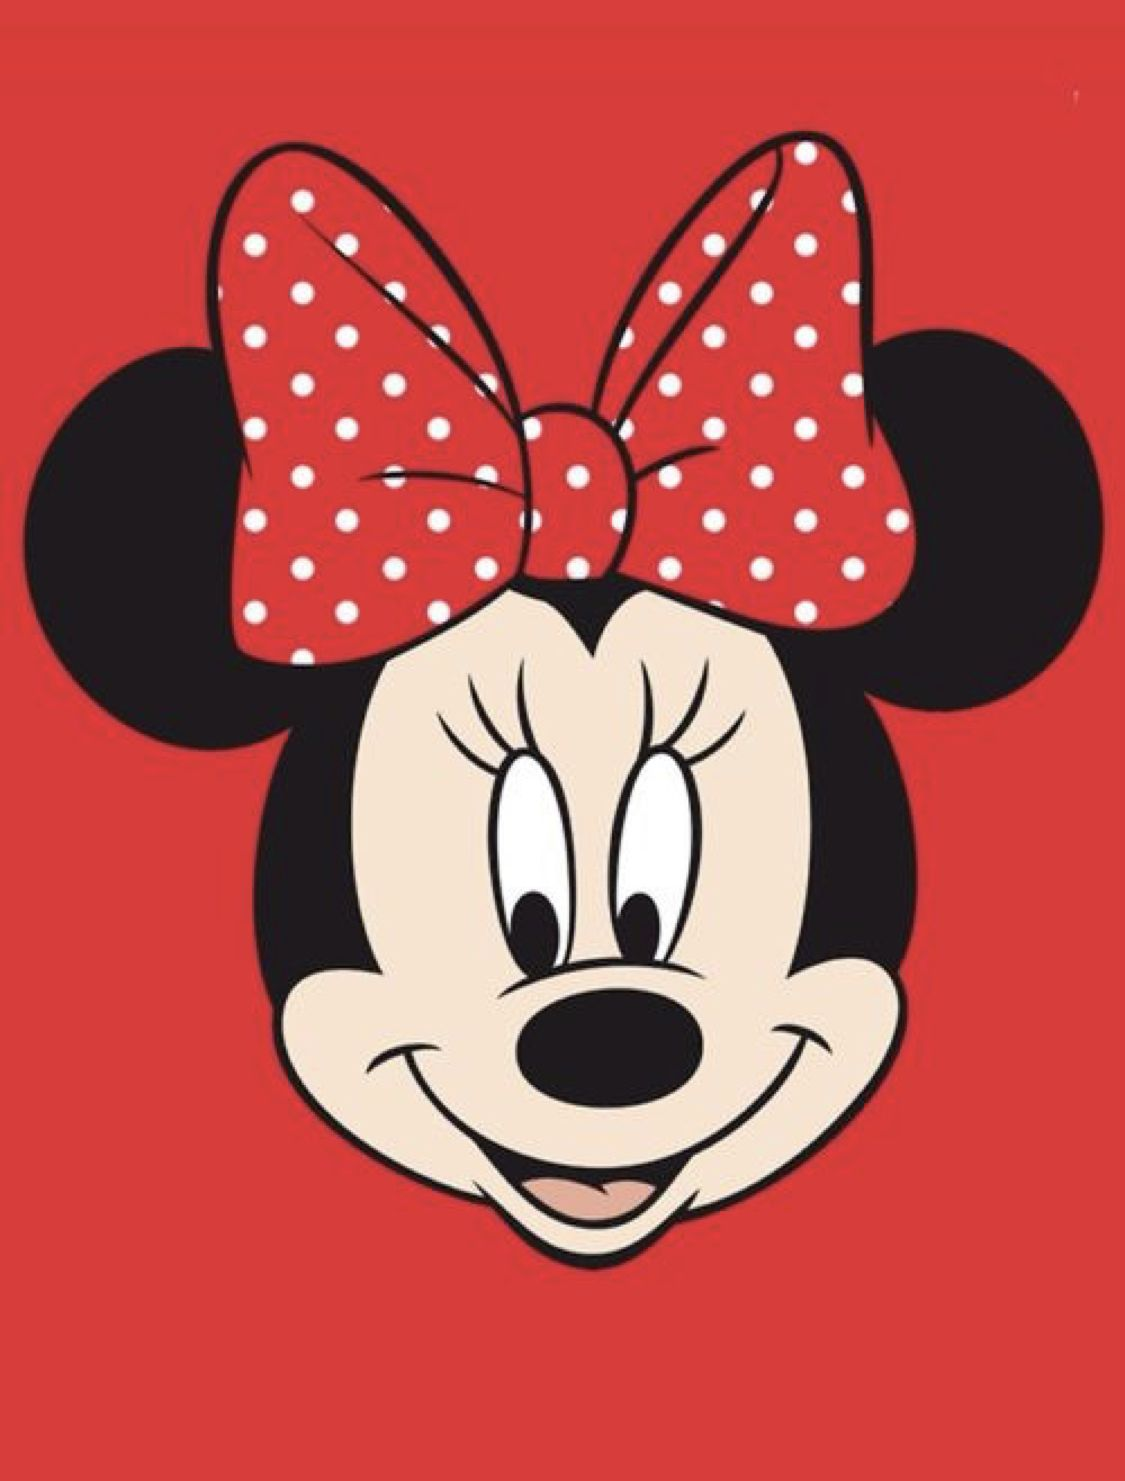 Minnie Mouse Mickey mouse wallpaper, Mickey mouse art